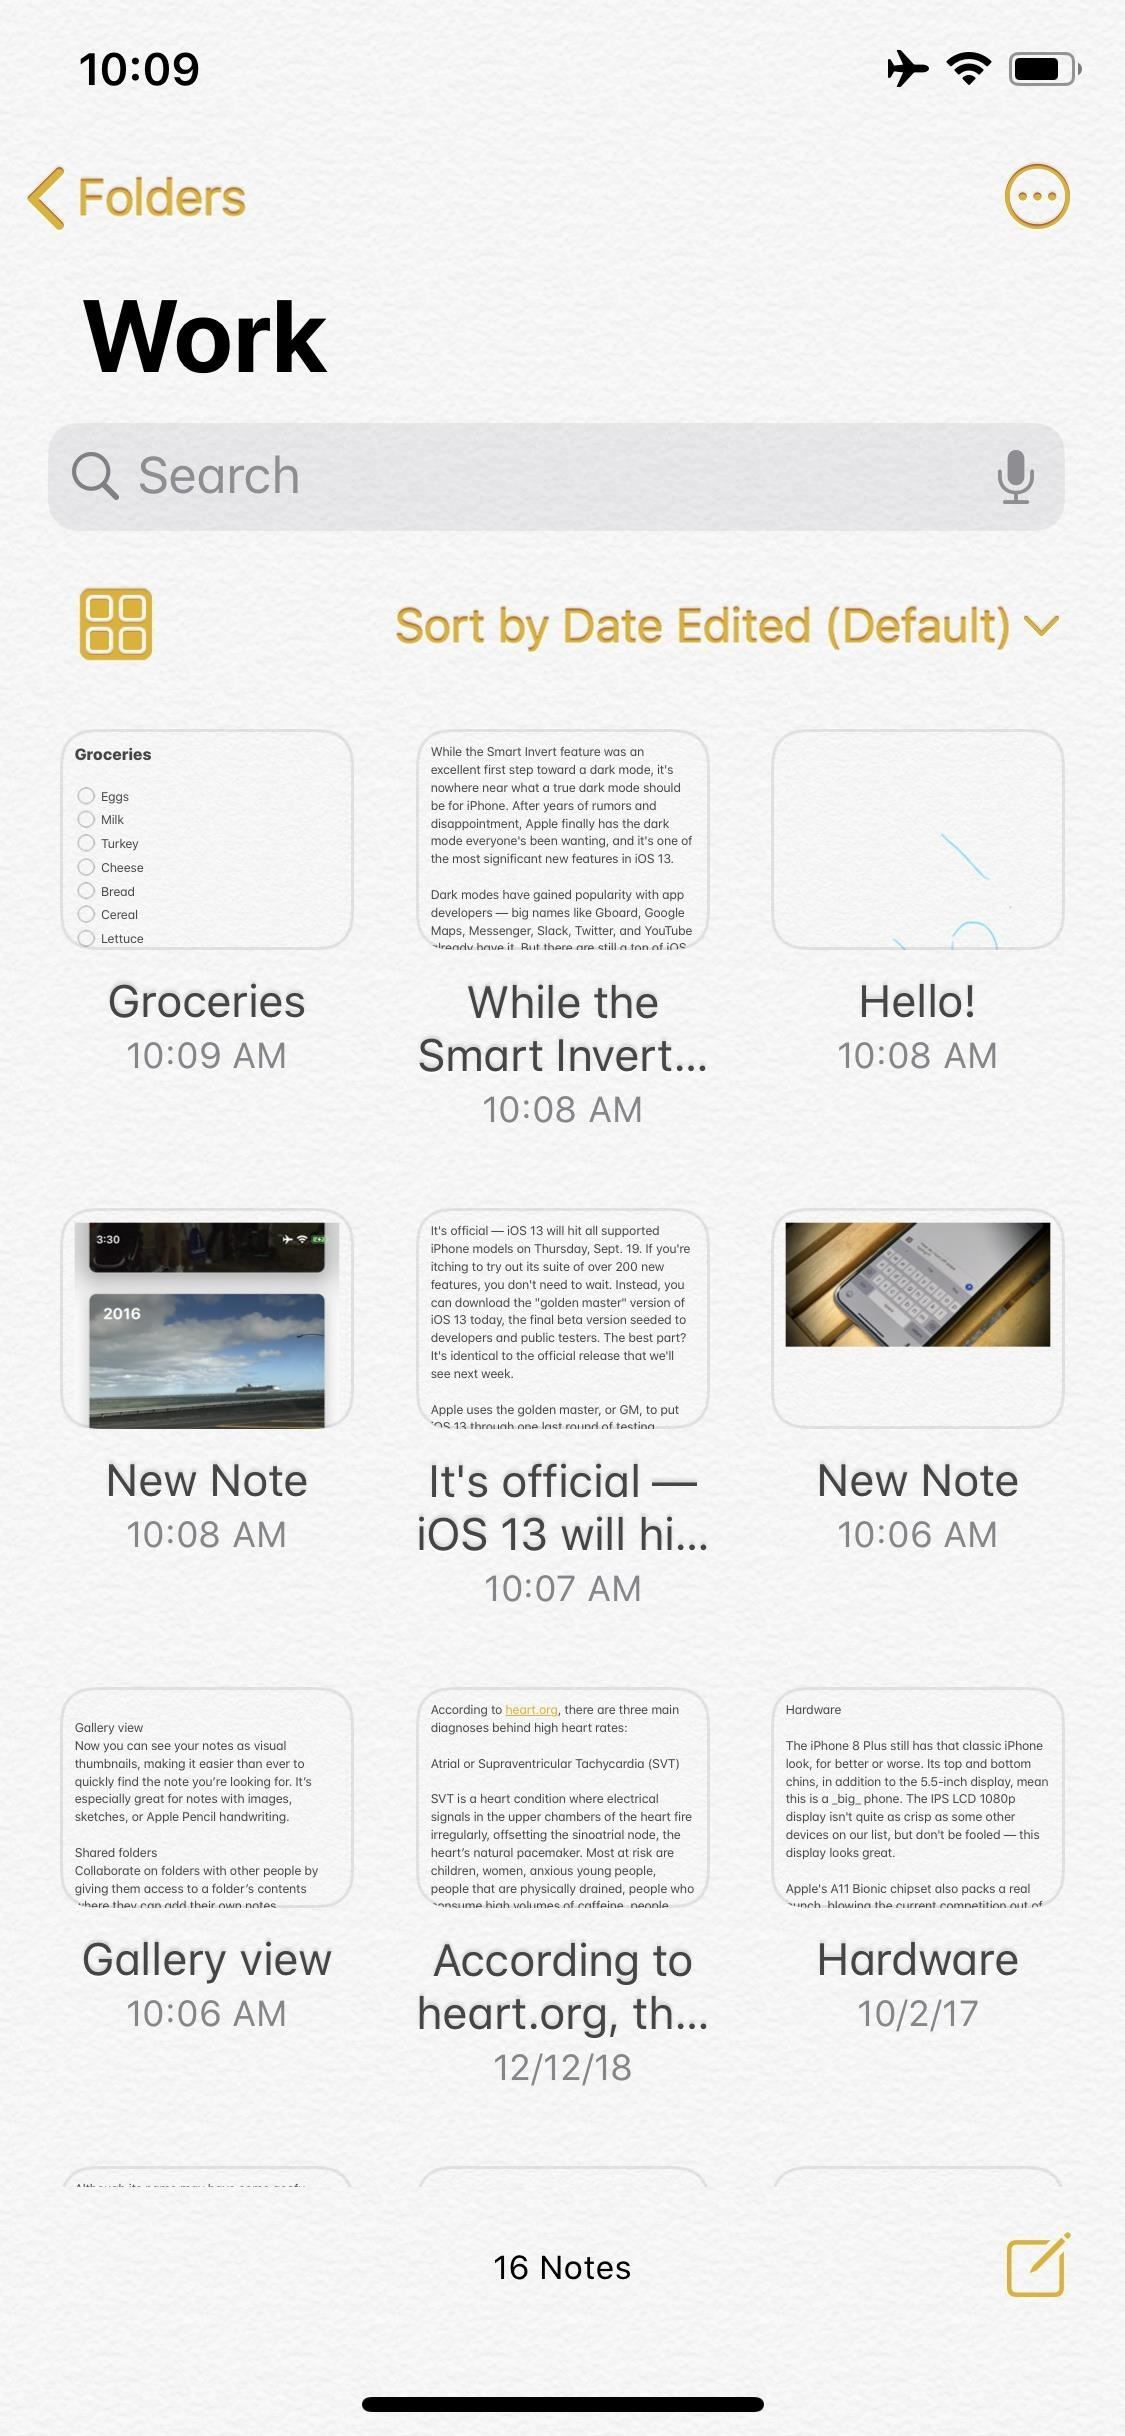 The iOS 13 Notes app contains 15 new features and changes